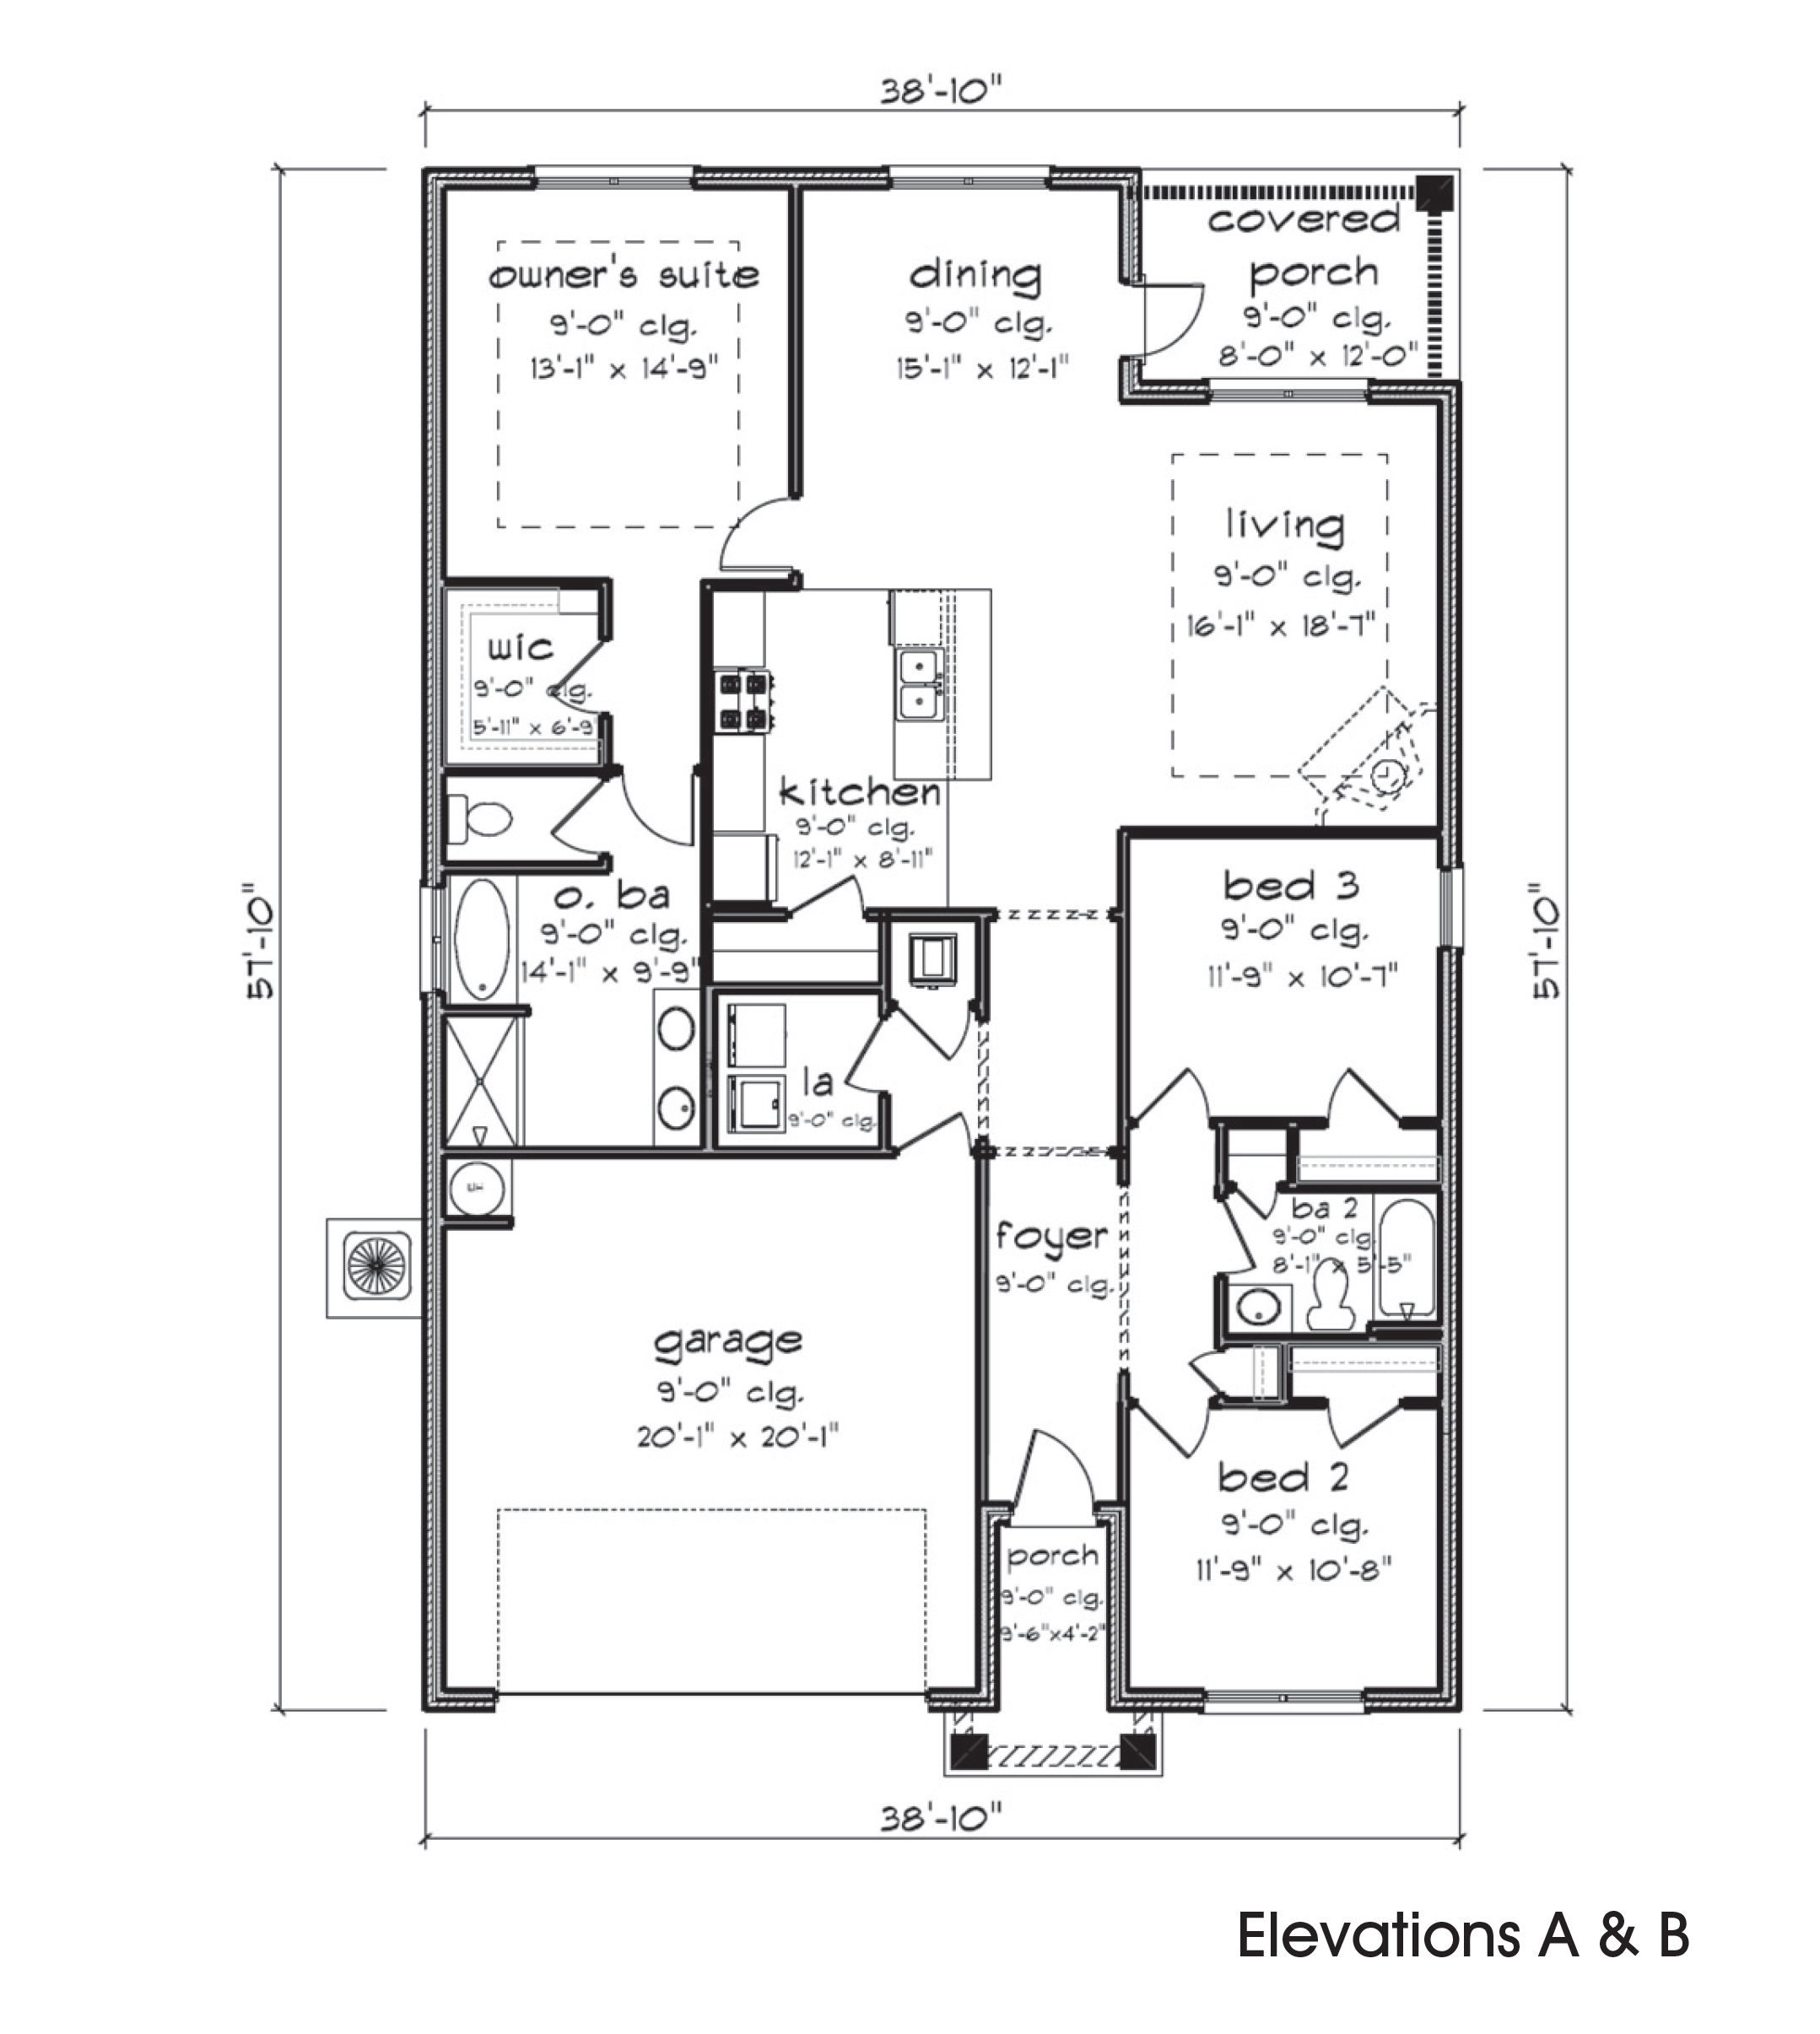 Lamar floor plan features 1,704 square feet with 3 bedrooms and 3 bathrooms